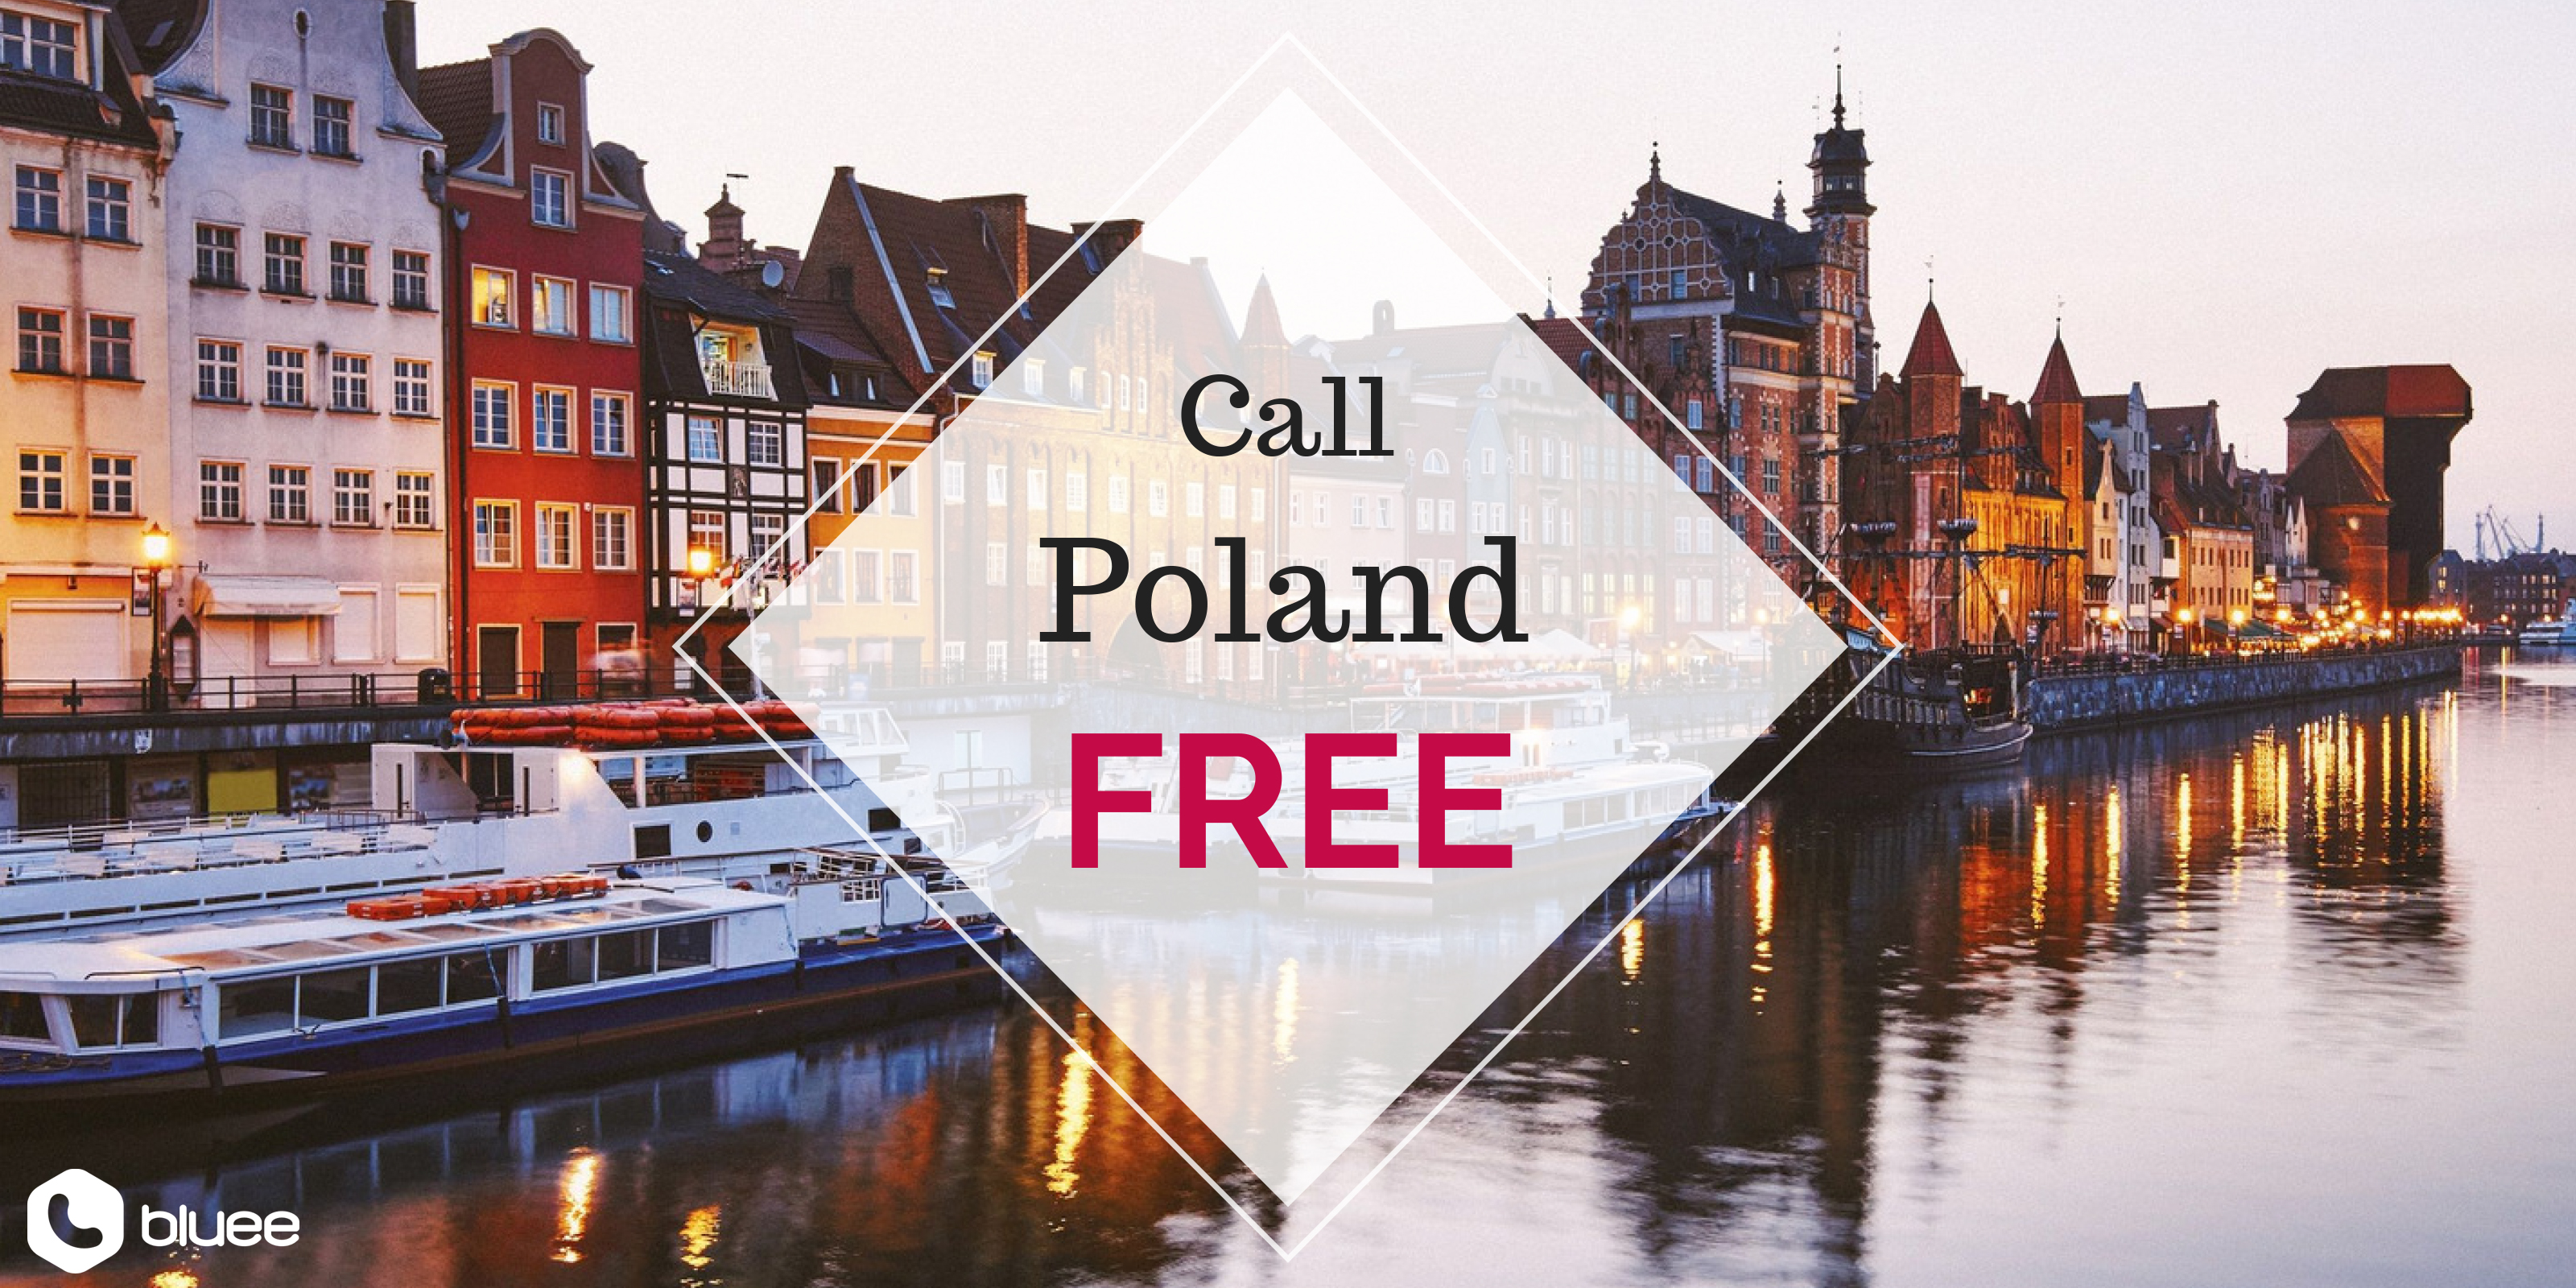 Call Poland for FREE